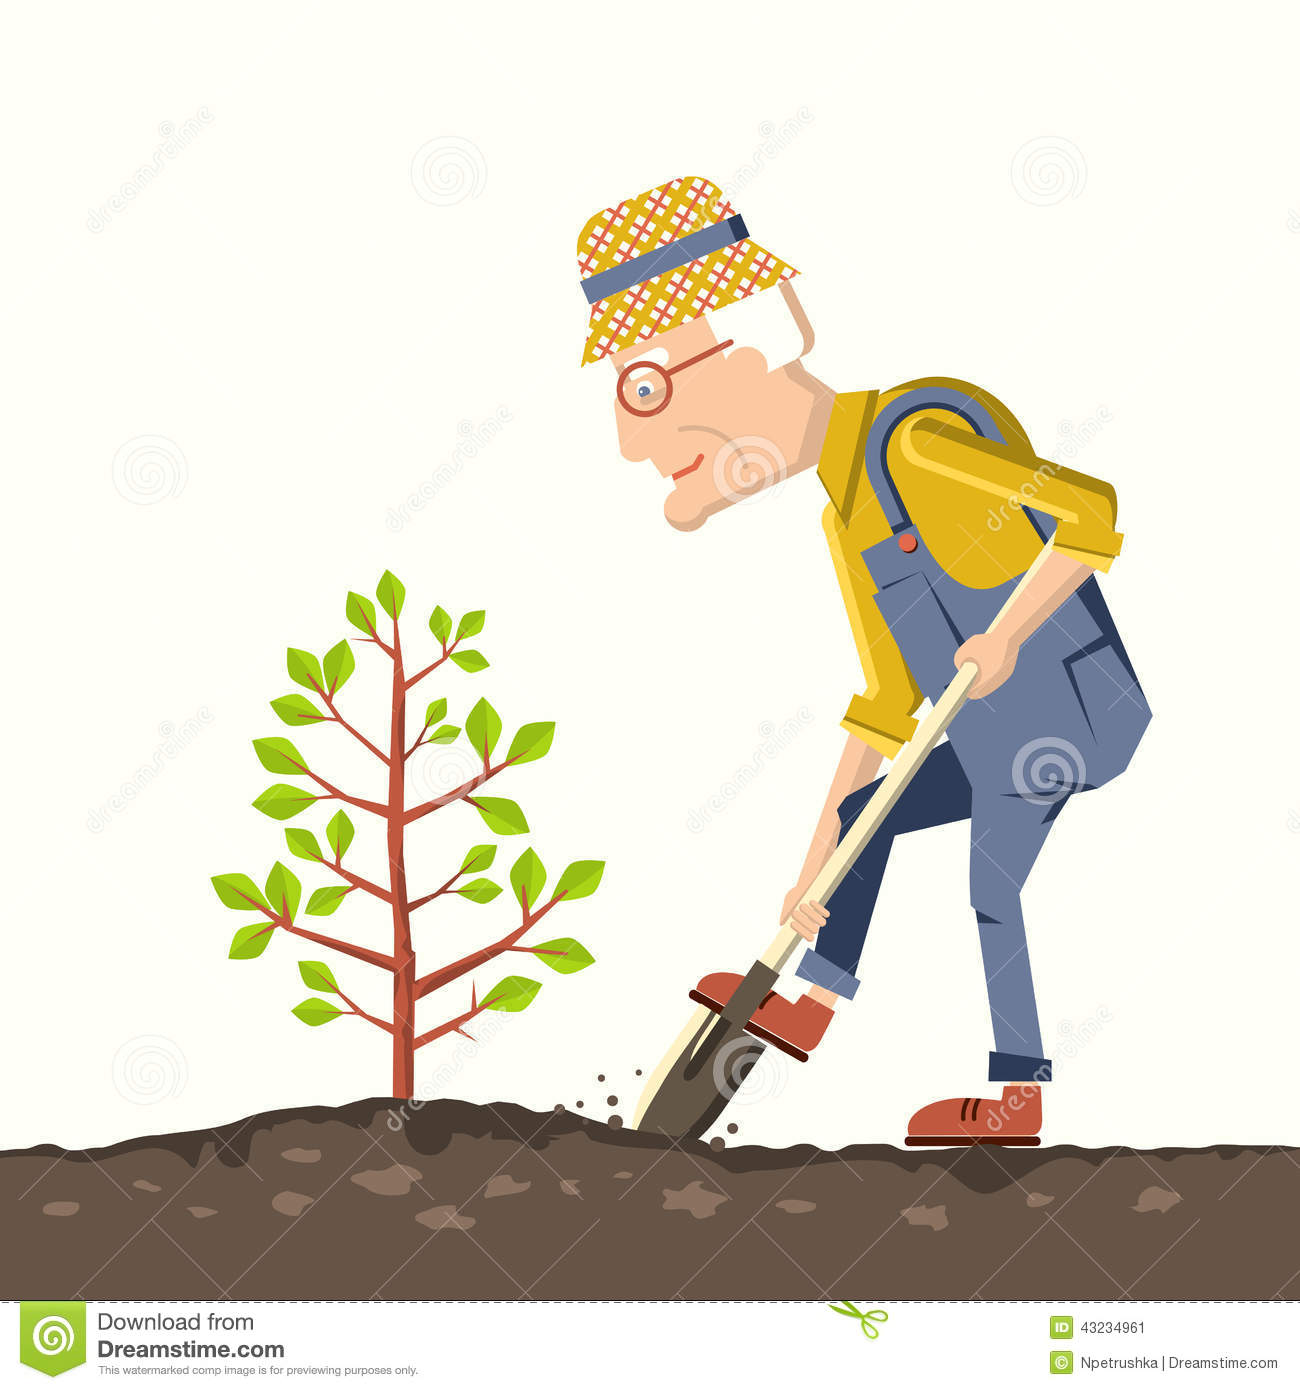 ... plant a tree in a garden.Vector illustration of gardener with shovel